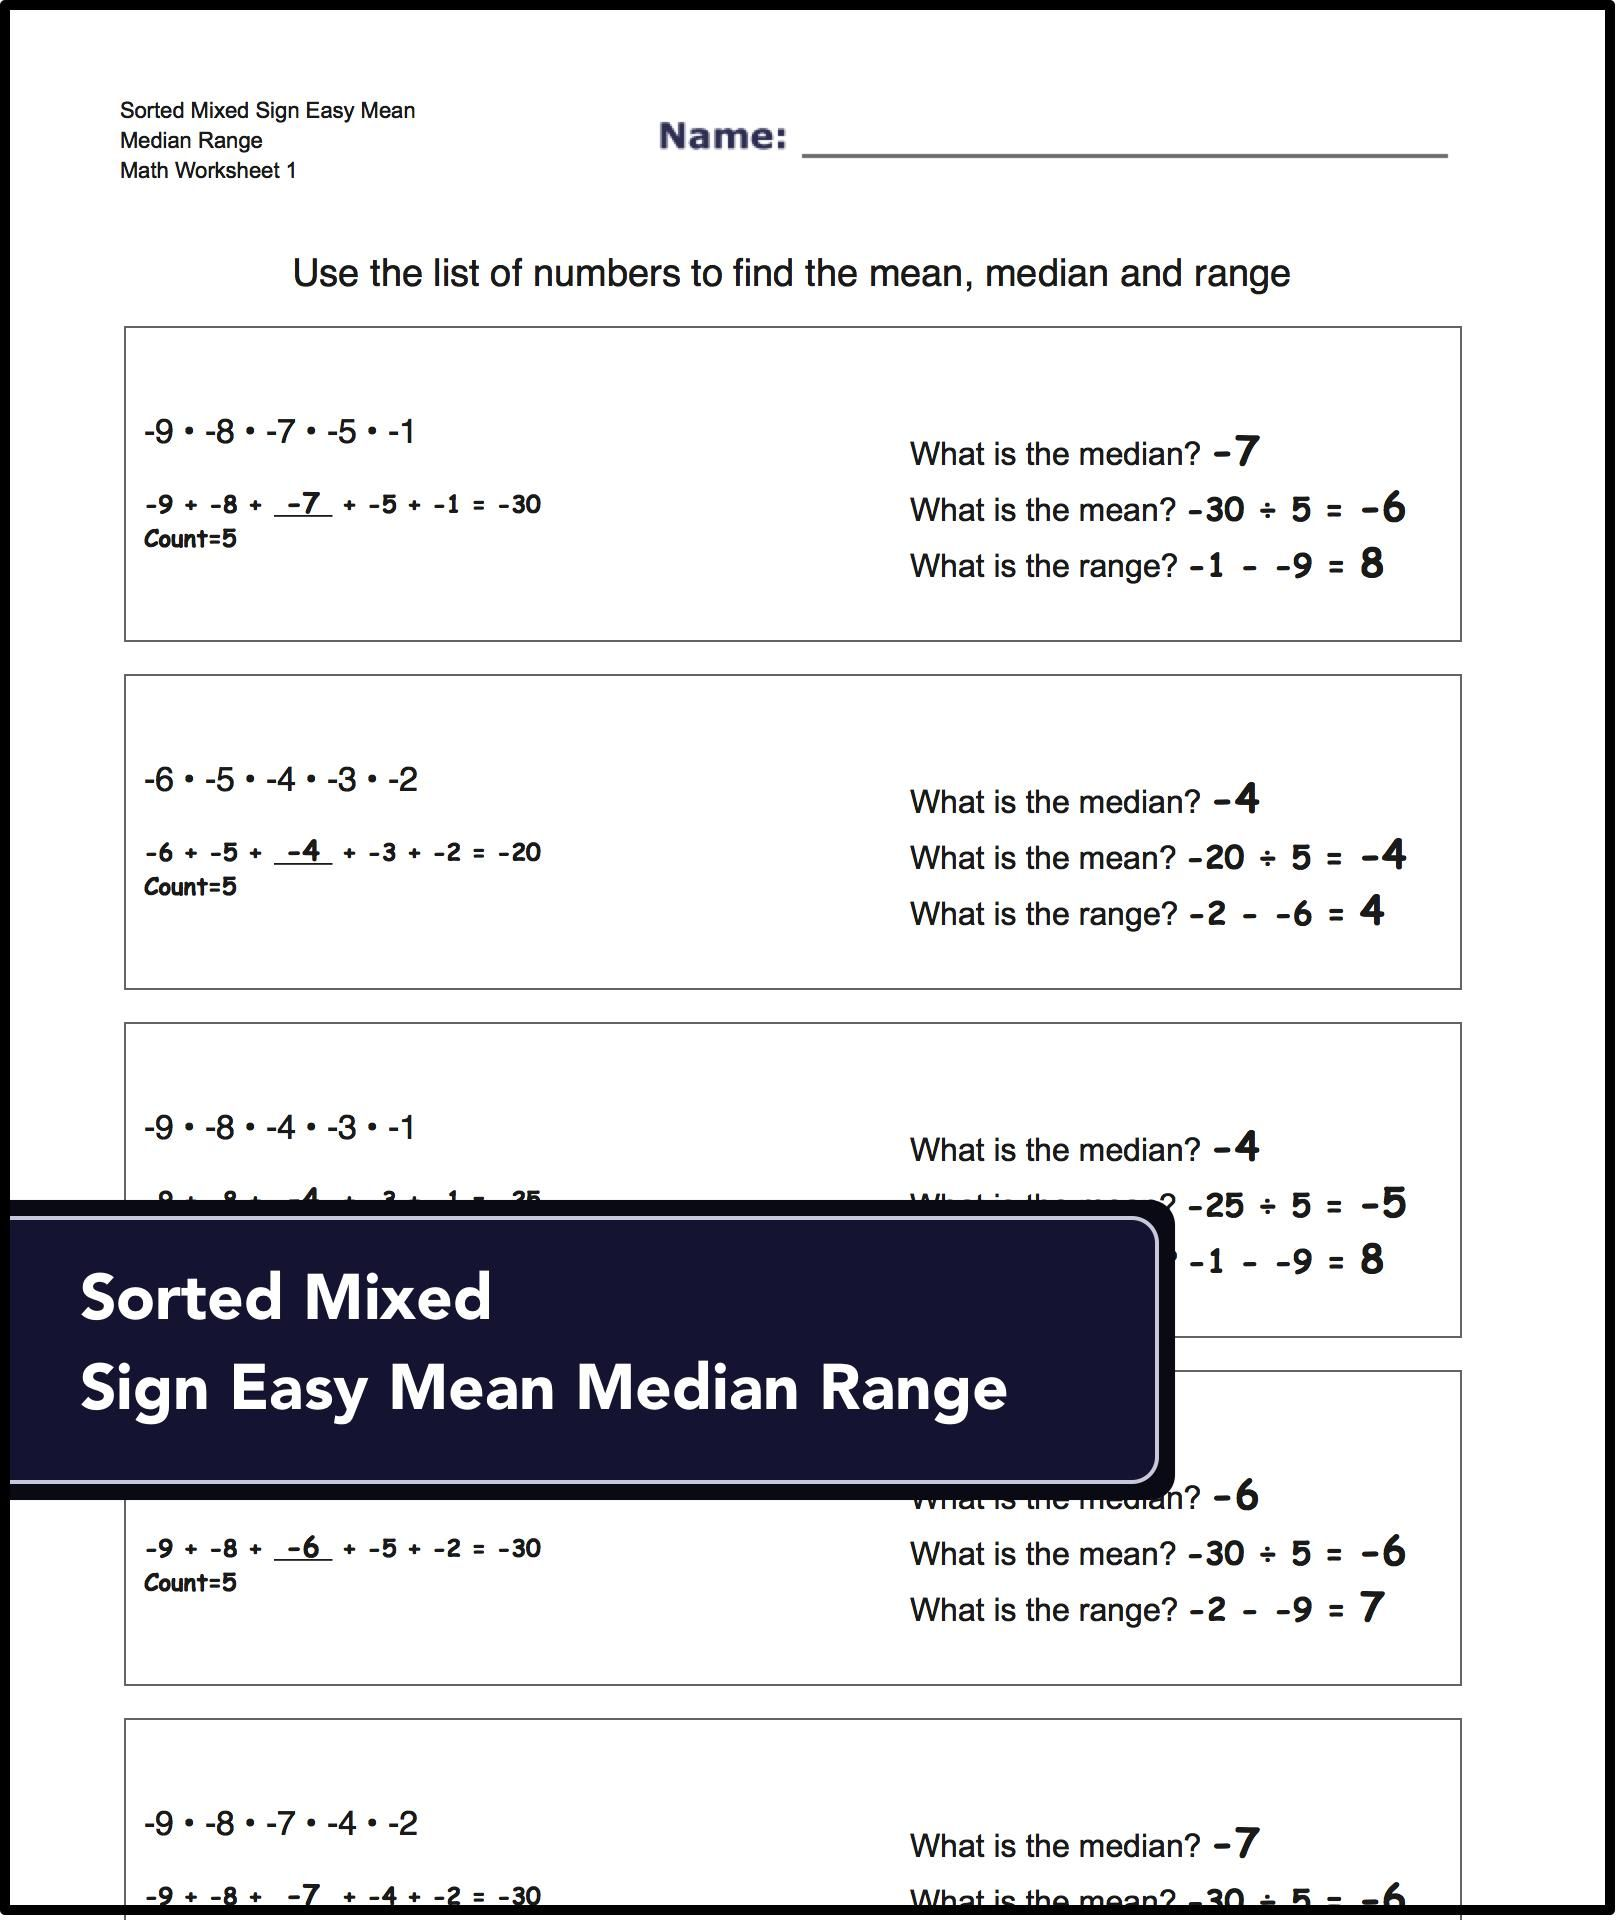 Printable Math Worksheets For Finding The Mean Median And Range For Mixed Sign Num Math Worksheets Kindergarten Worksheets Free Printables Math Facts Addition [ 1920 x 1620 Pixel ]